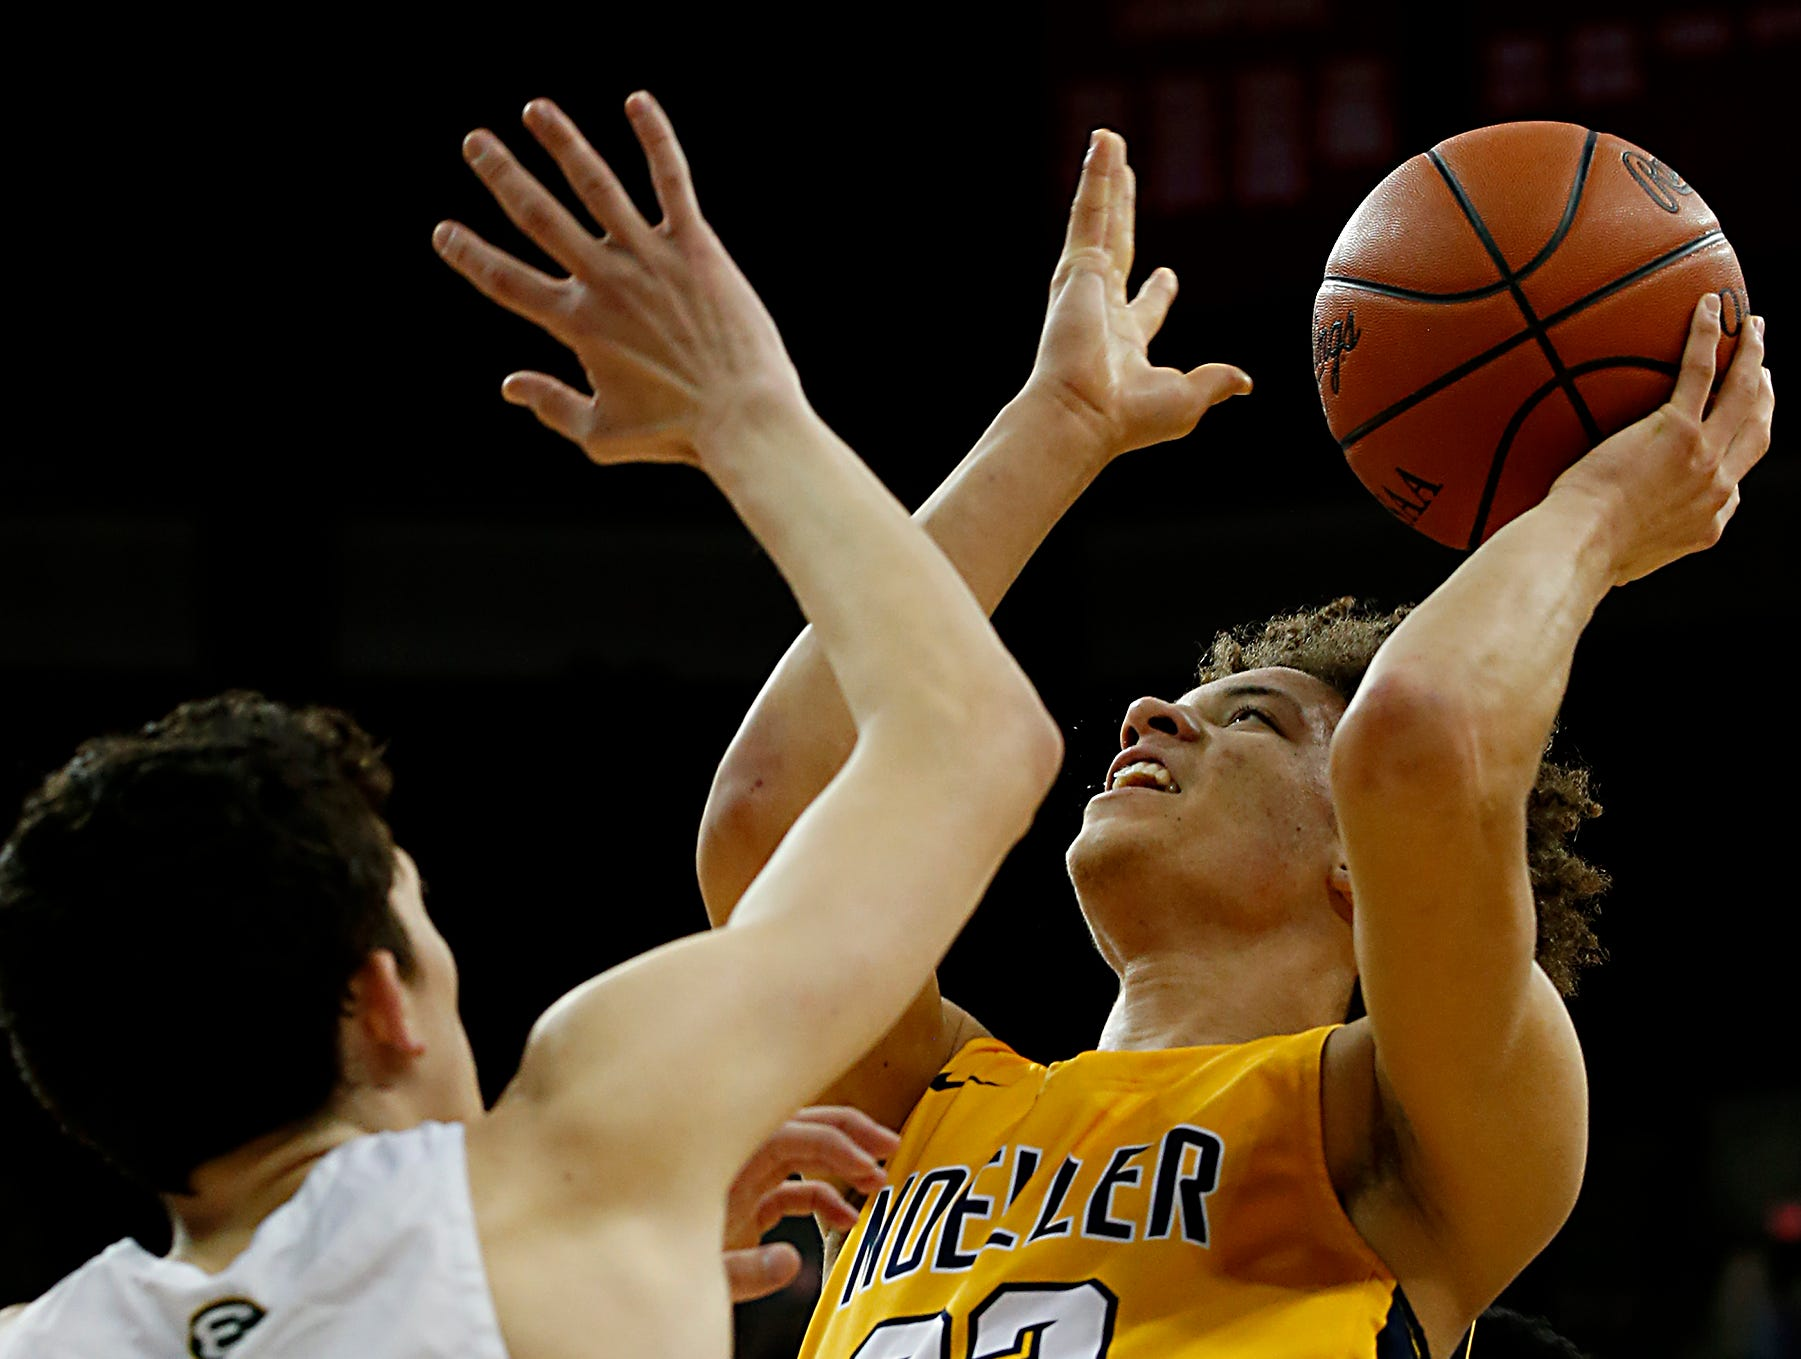 Moeller forward Max Land scores two against St. Edward guard Josh Ogle during their Division I semifinal at the Schottenstein Center in Columbus Friday, March 22, 2019.